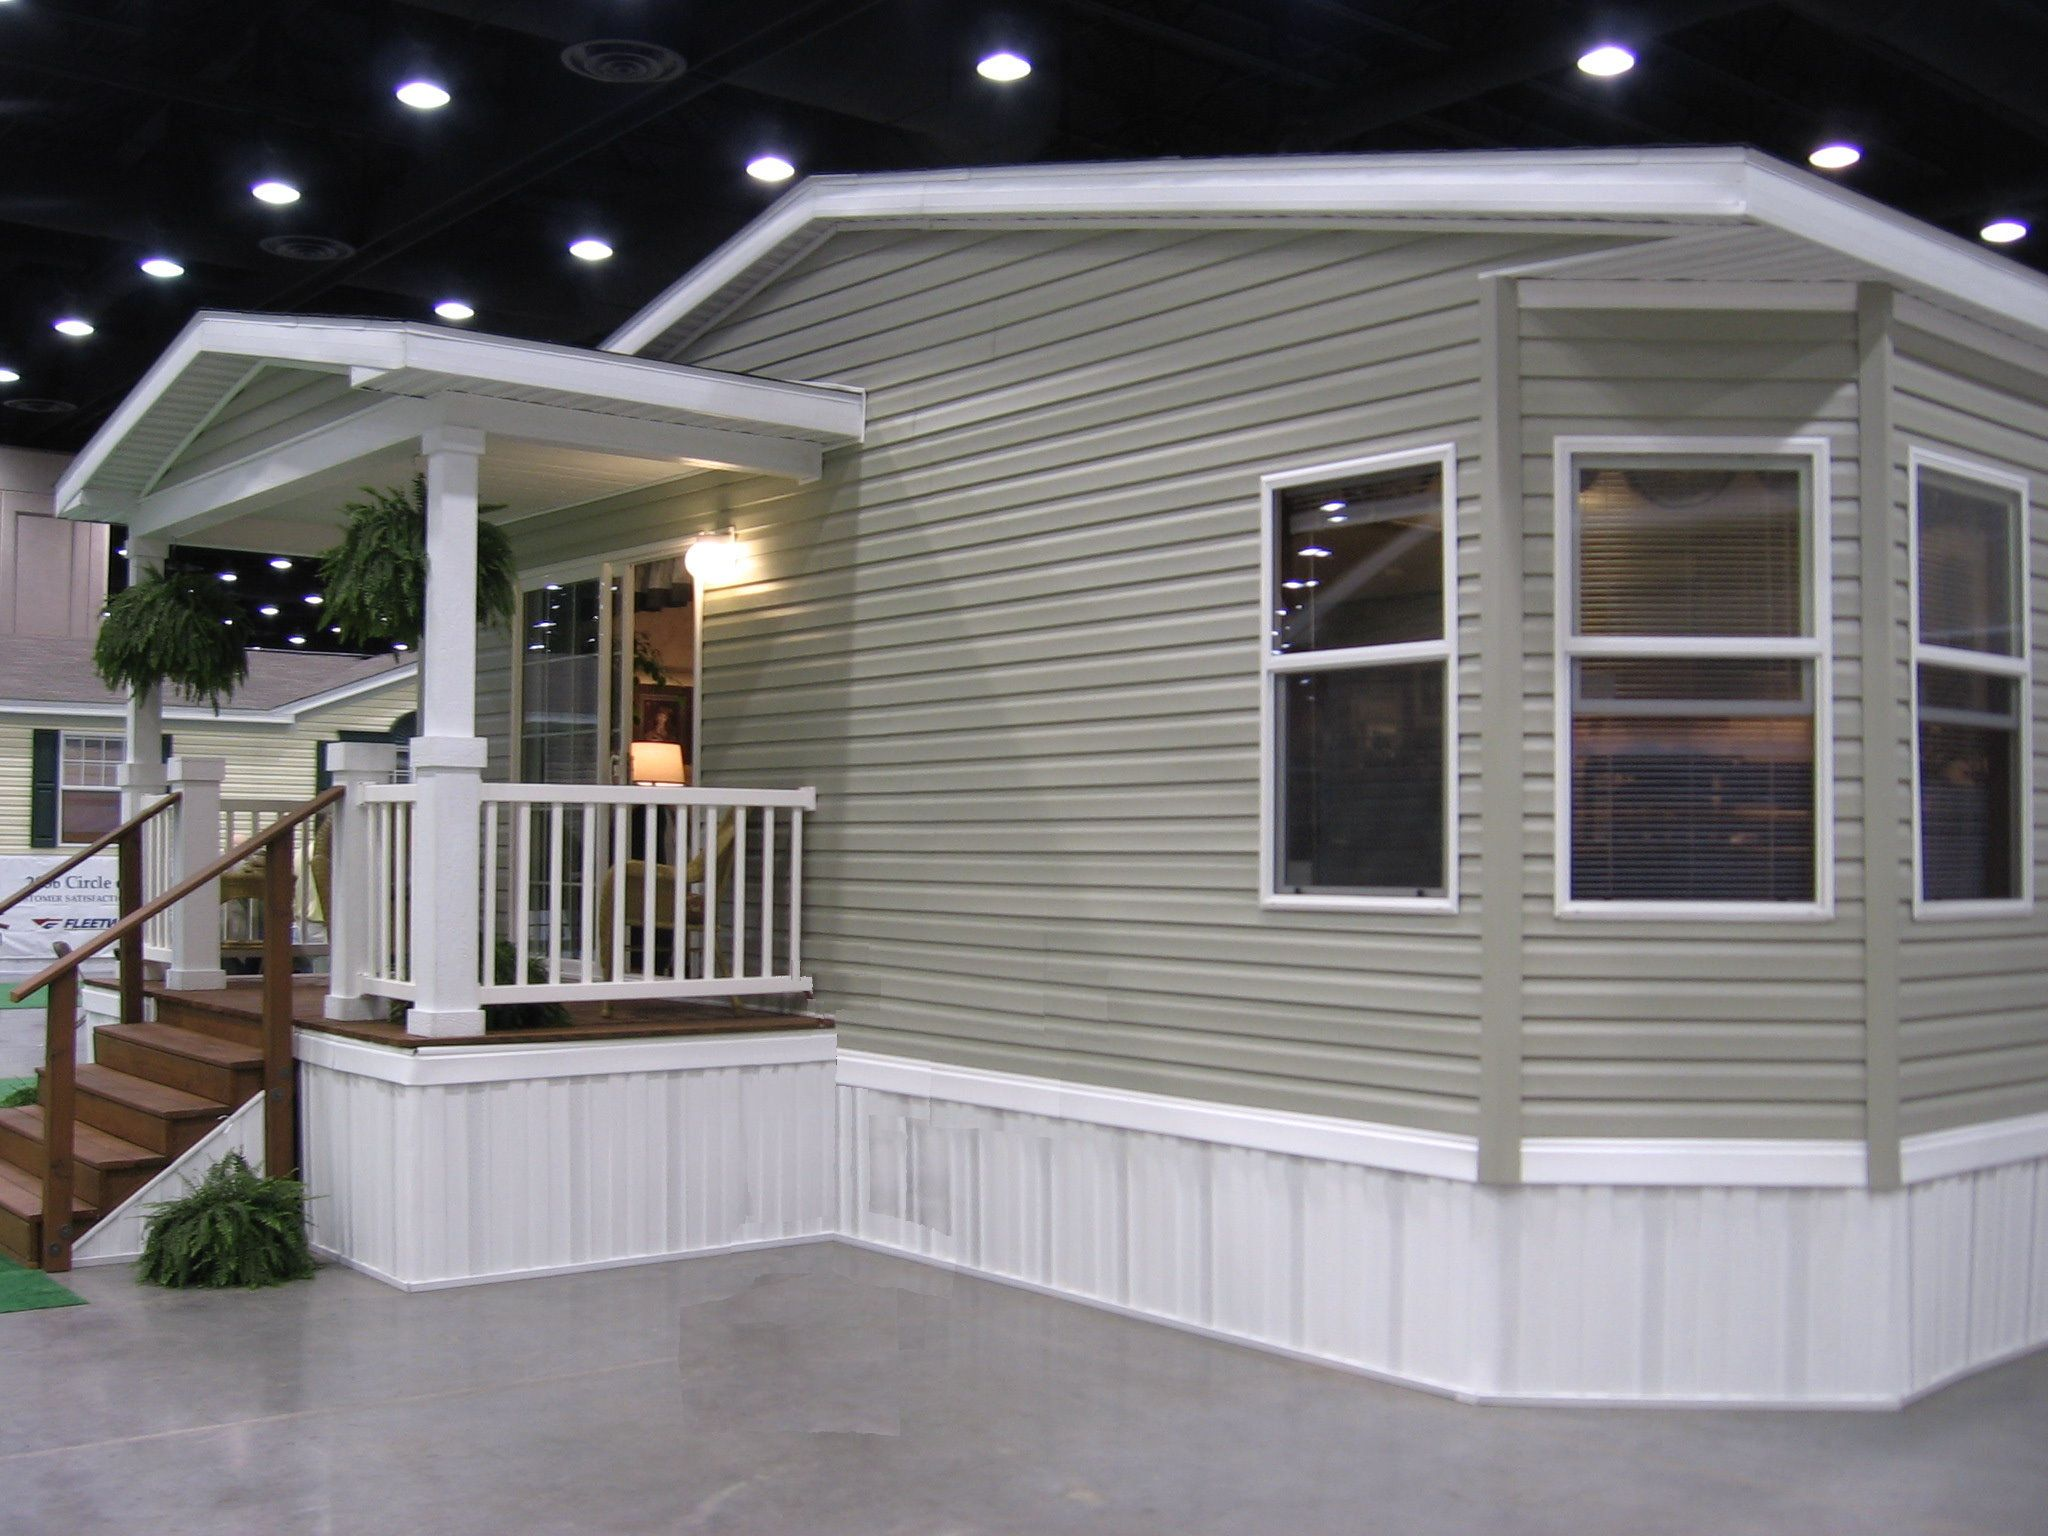 Mobile home deck ideas porch designs for mobile homes House plans with front porches